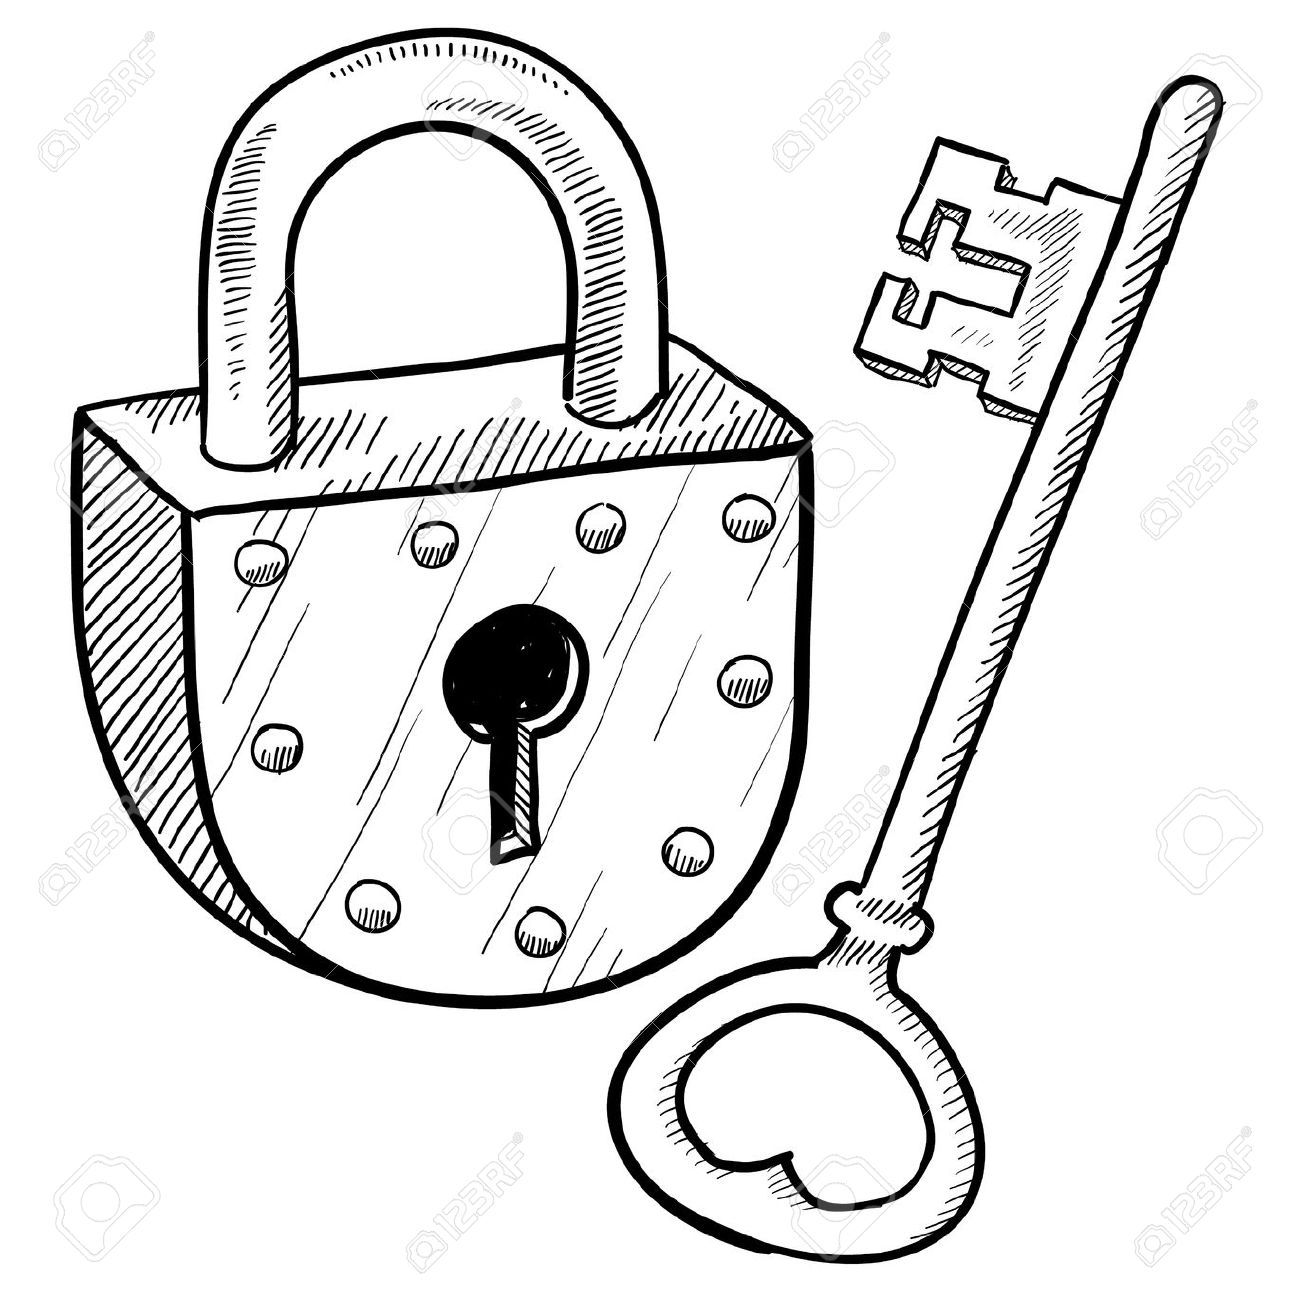 Padlock Stock Illustrations Cliparts And Royalty Free Padlock